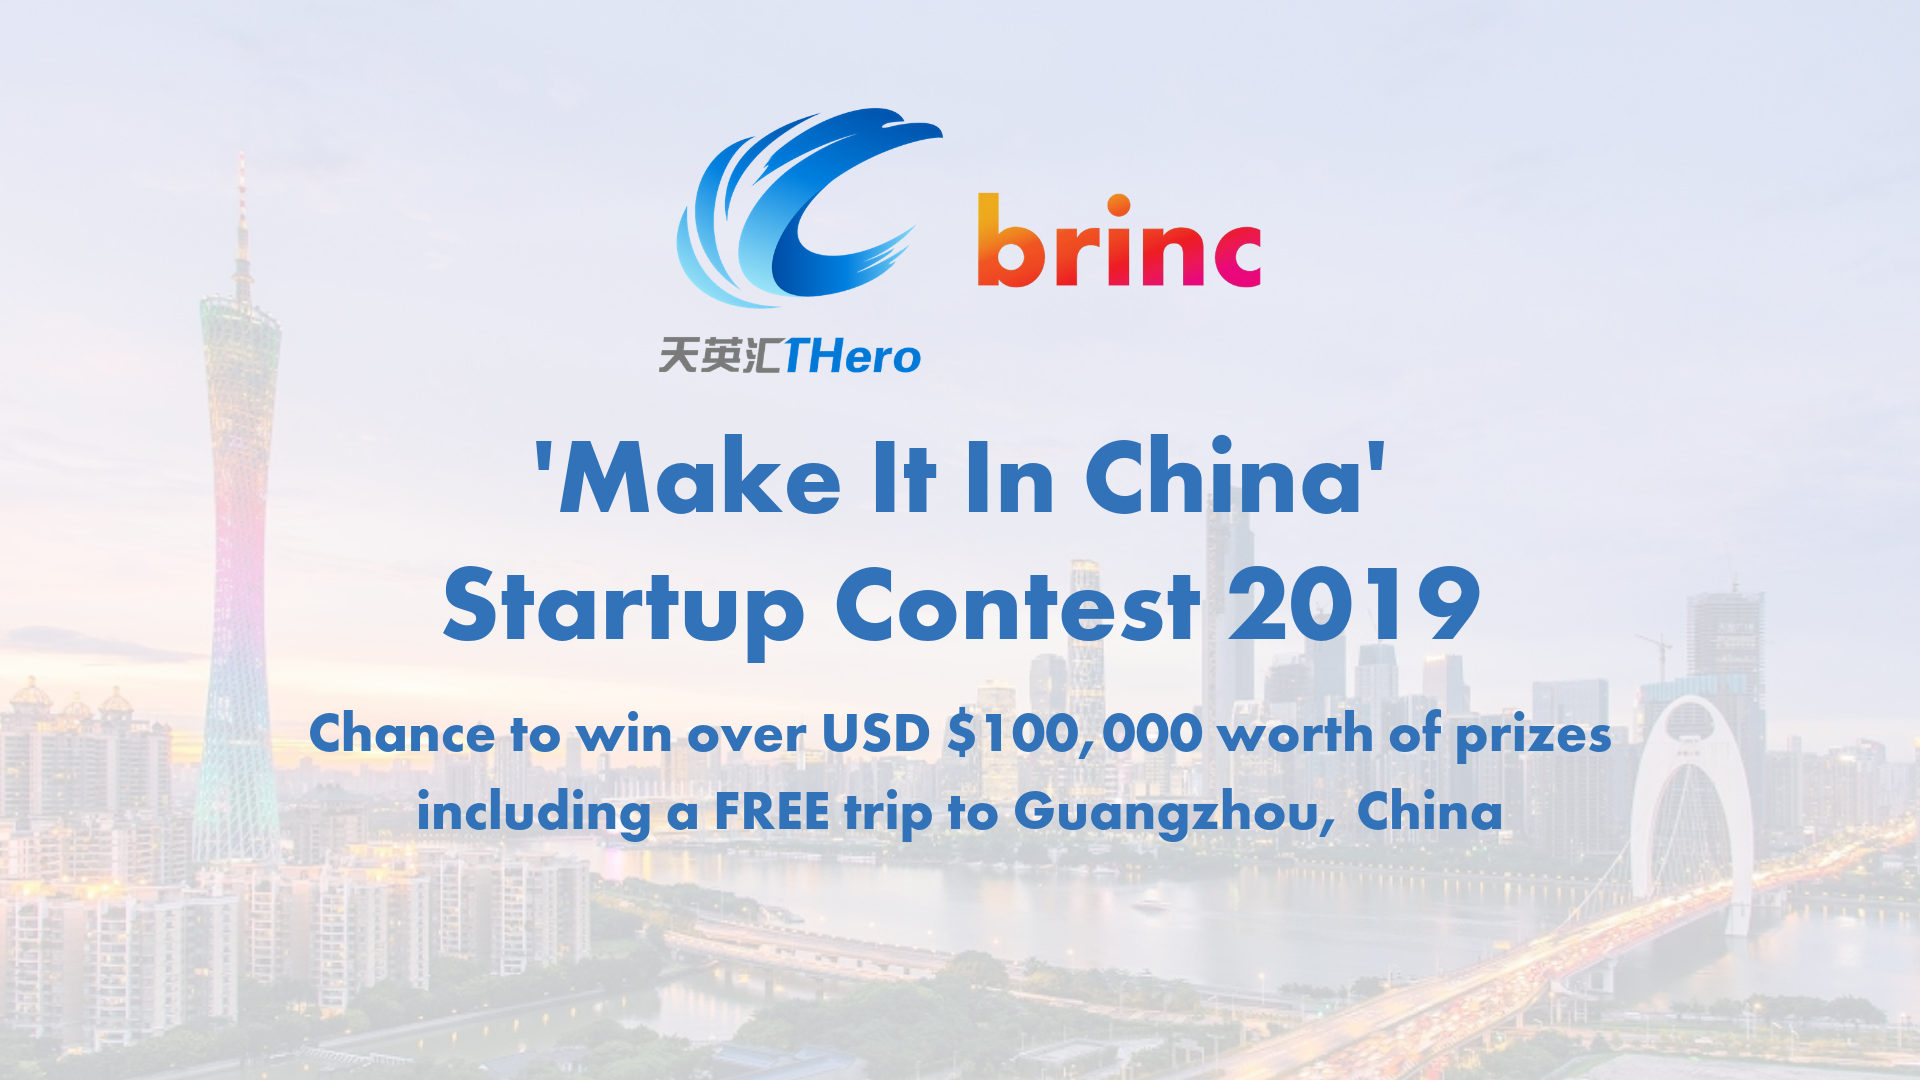 THero+-+Make+It+In+China+Startup+Contest+-+Website.png